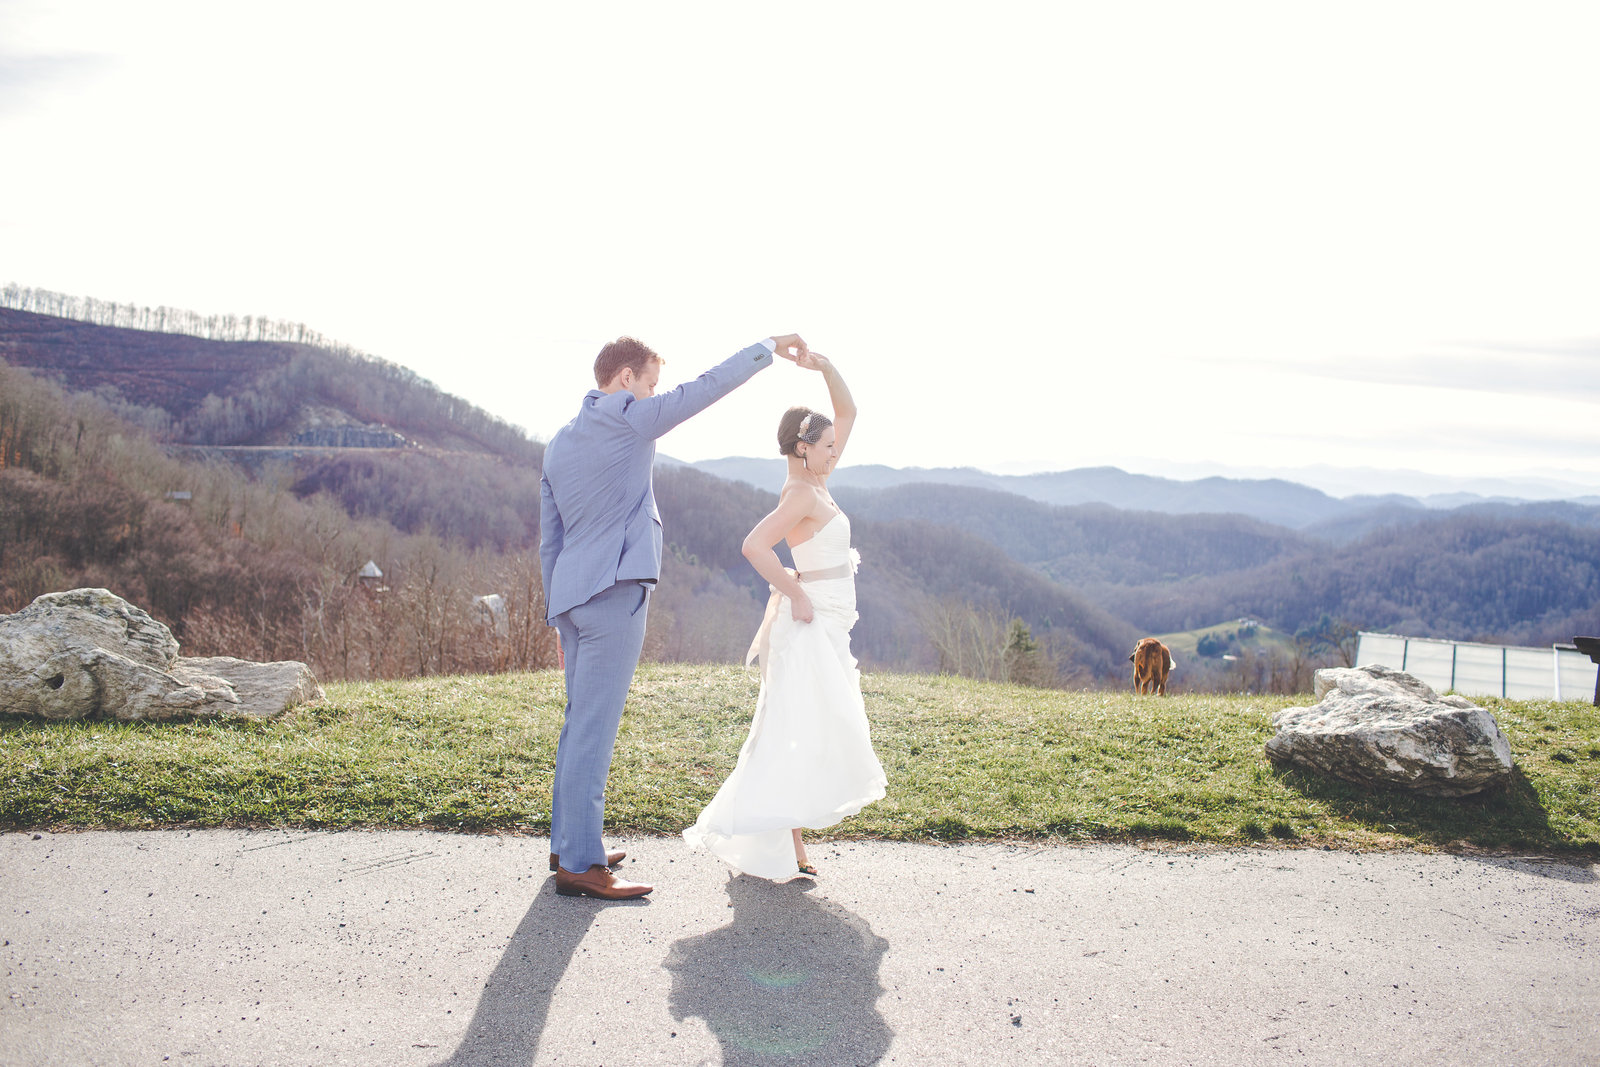 ashevilledestinationweddingphotographer_Biltmore_lifestyle_BrenPhotography_567